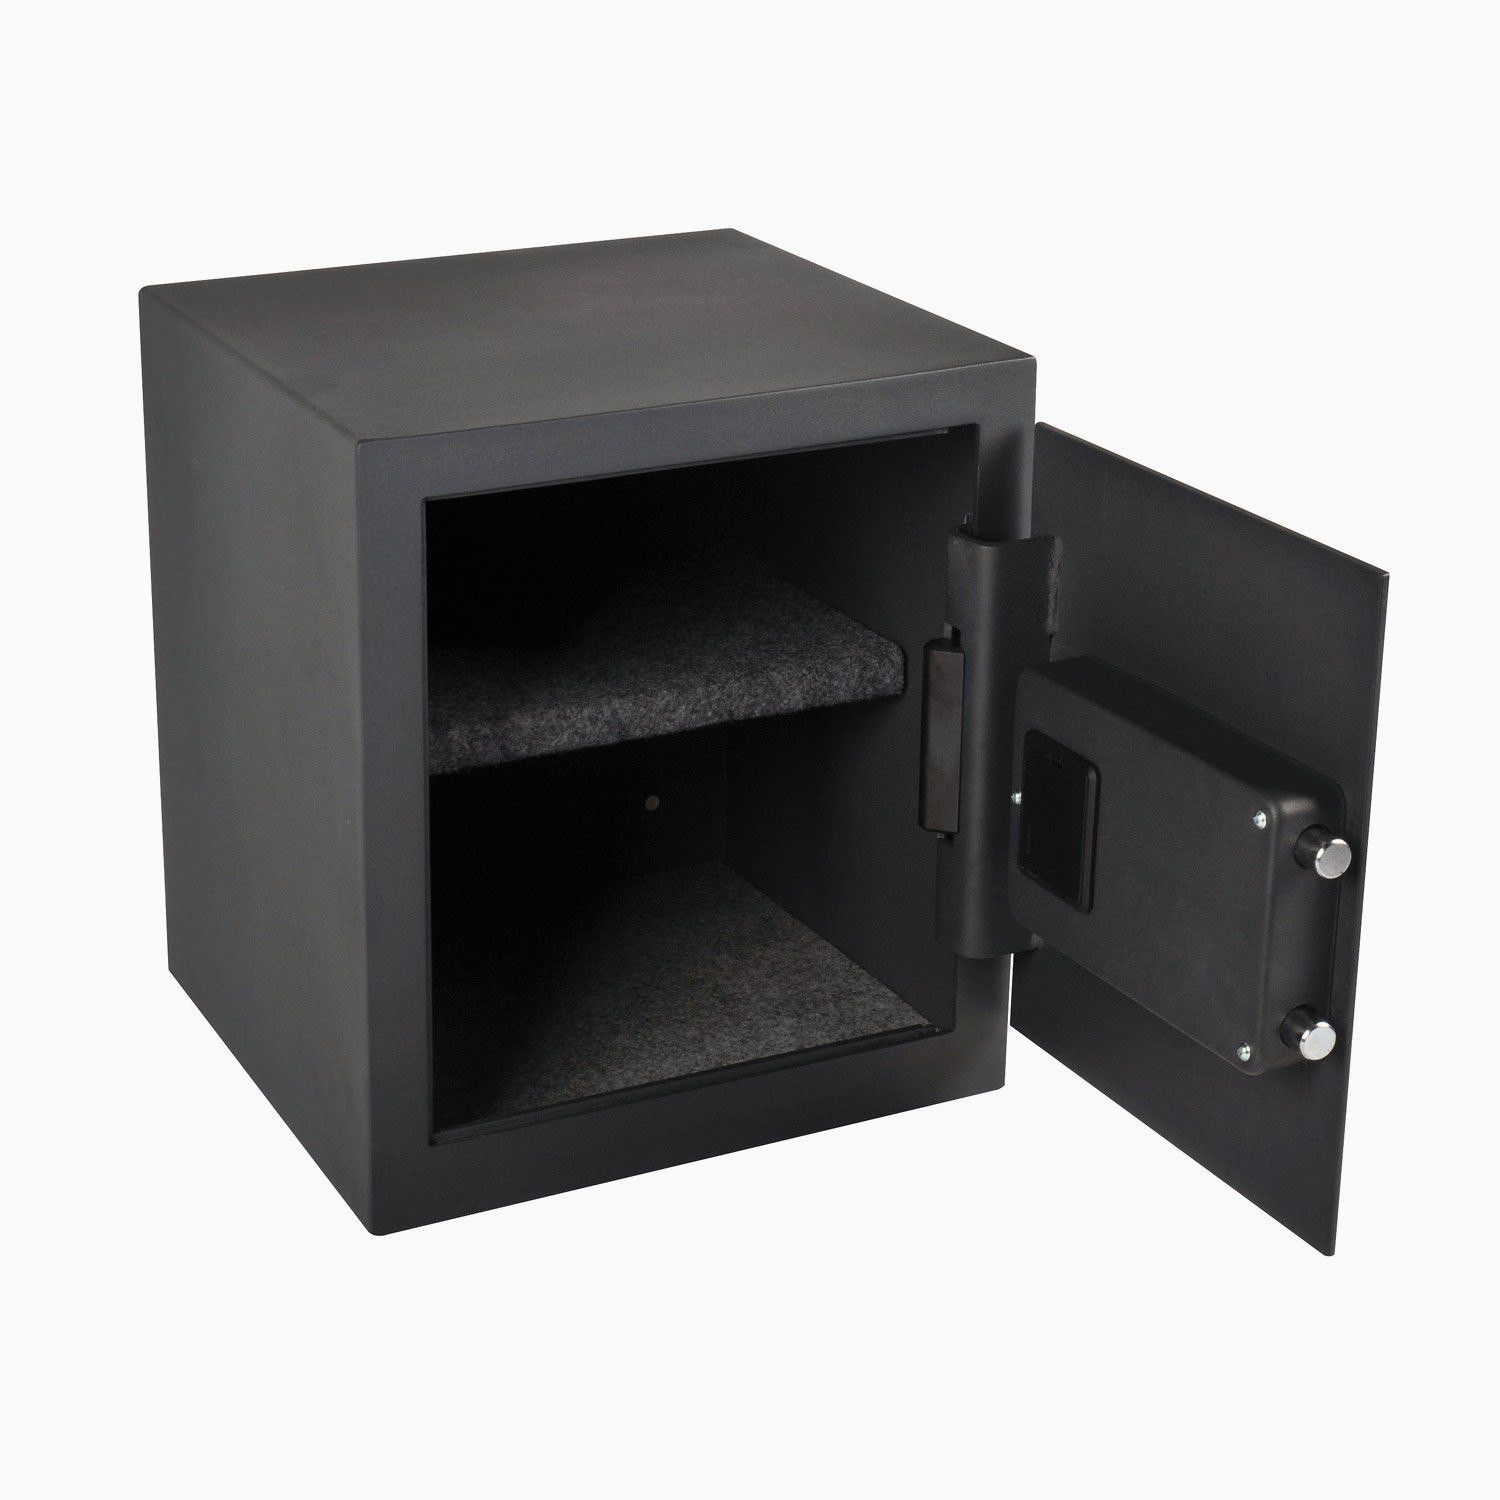 Elegant Brico Depot Coffre Fort Locker Storage Storage Lockers